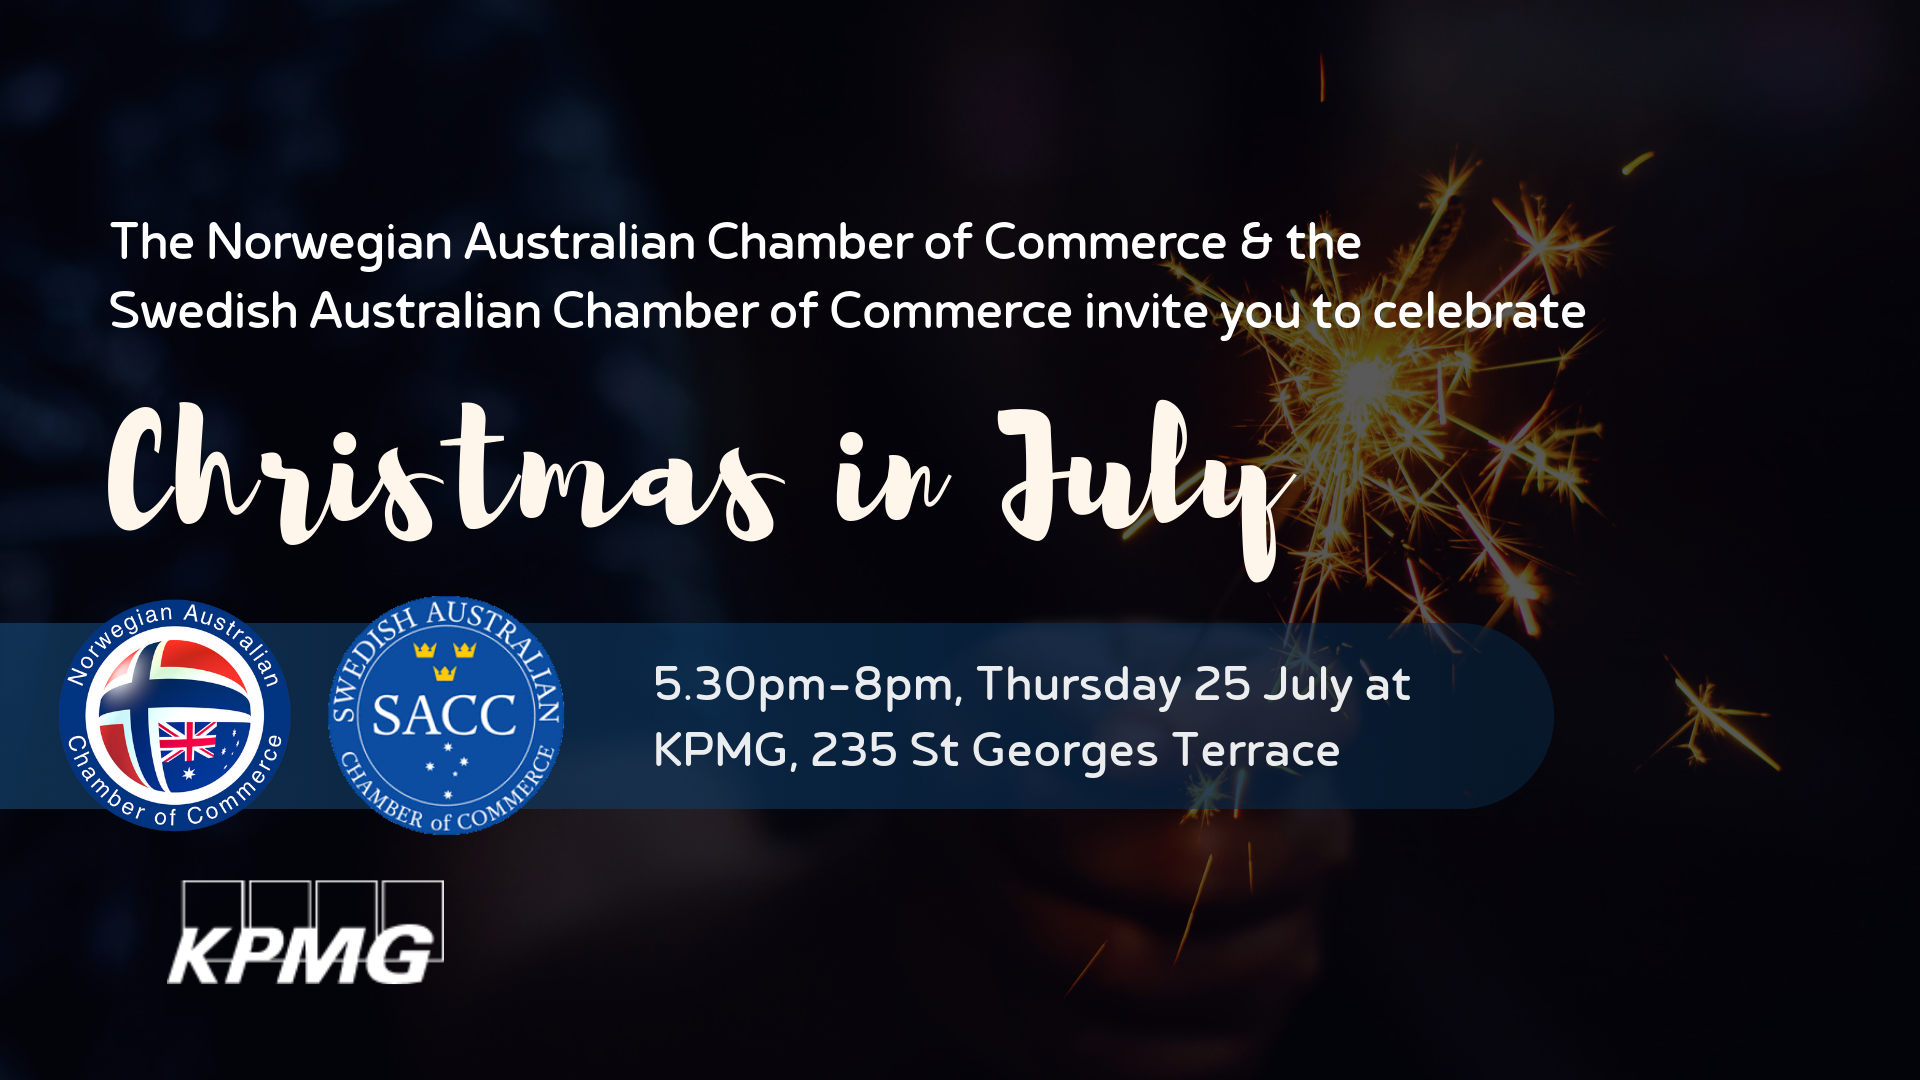 Christmas In July Australia 2019.Perth Christmas In July With Nacc And Sacc